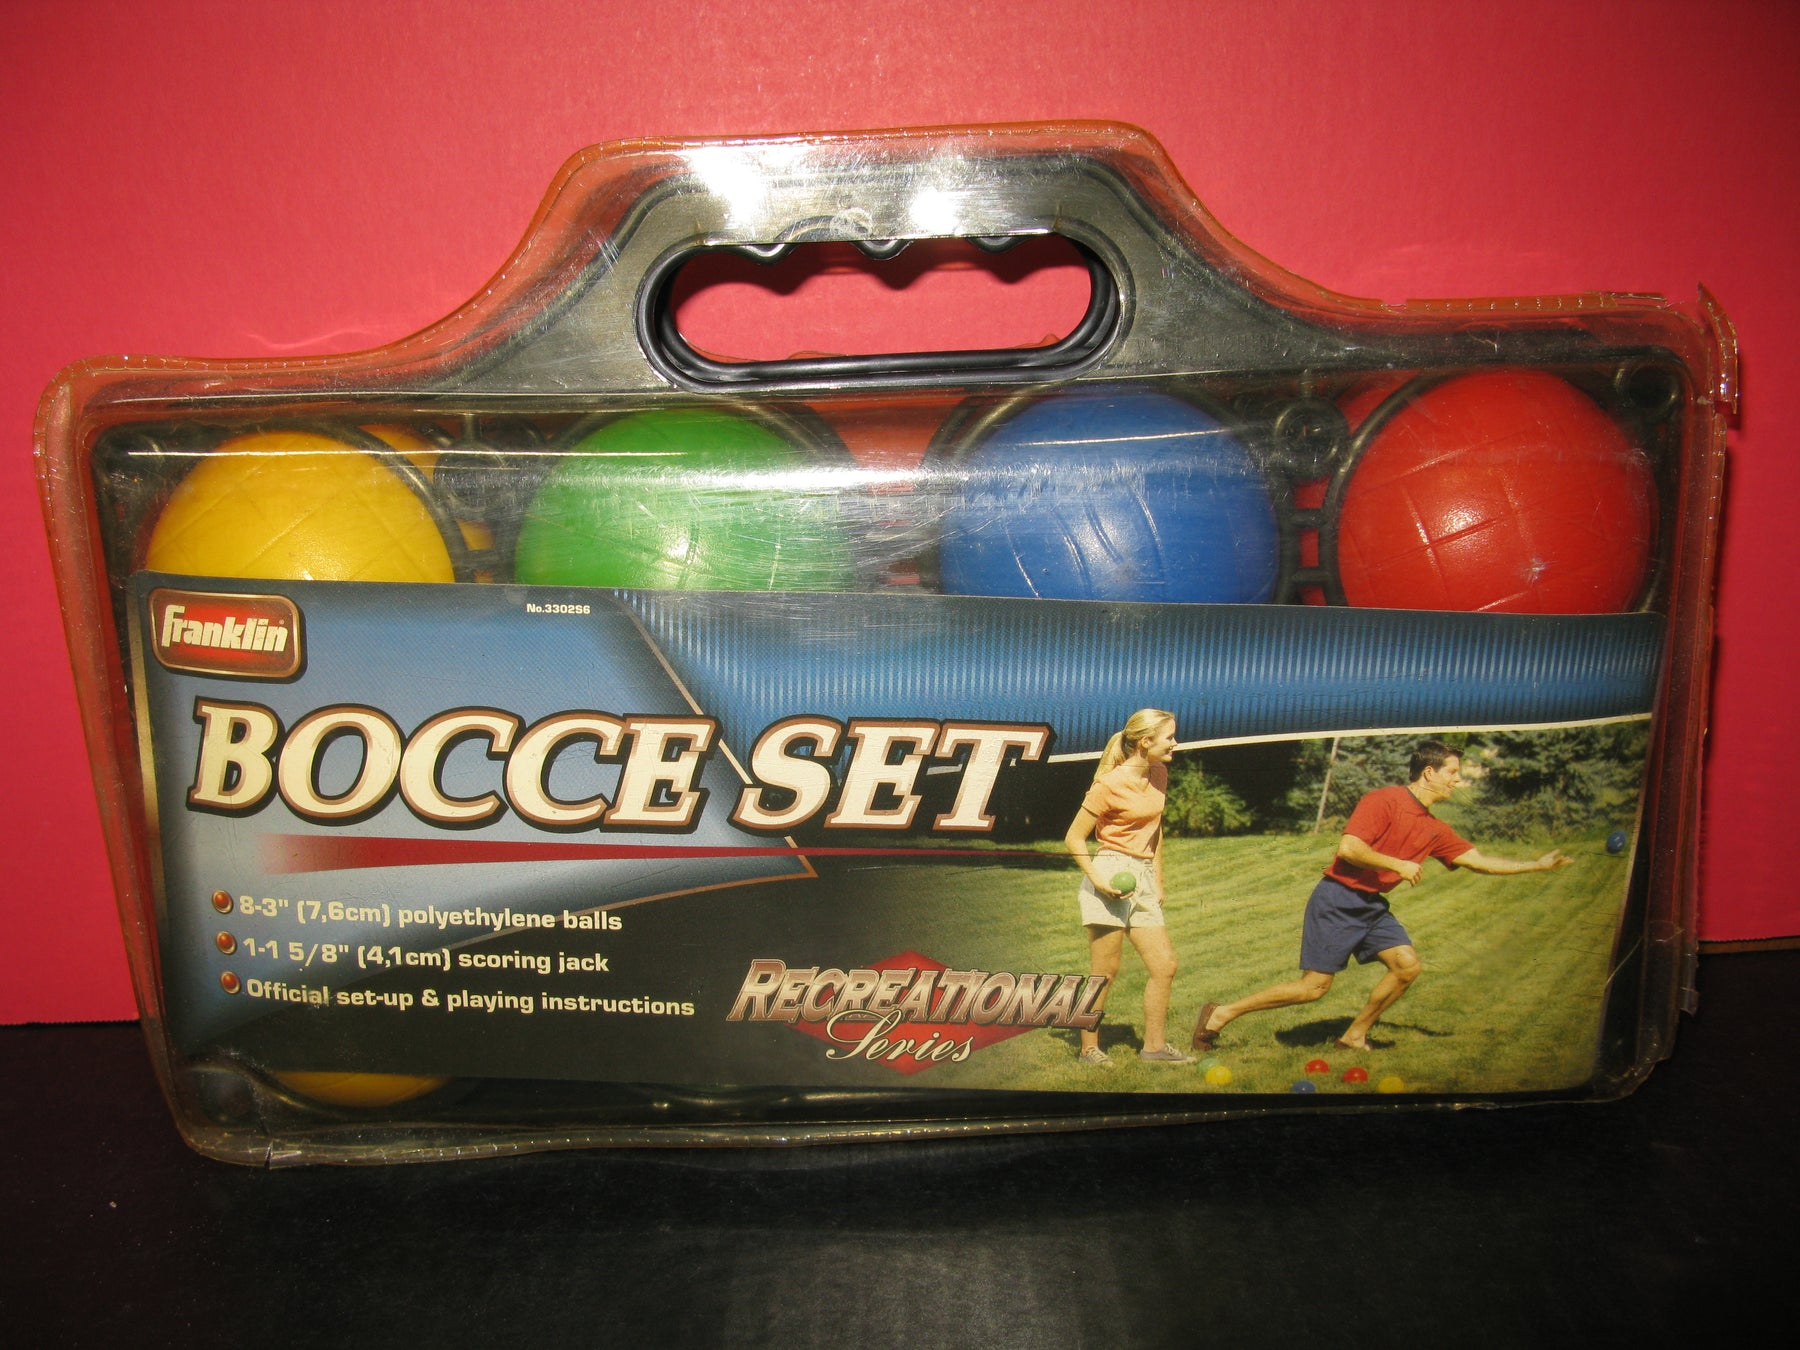 Bocce Set-Recreational Series